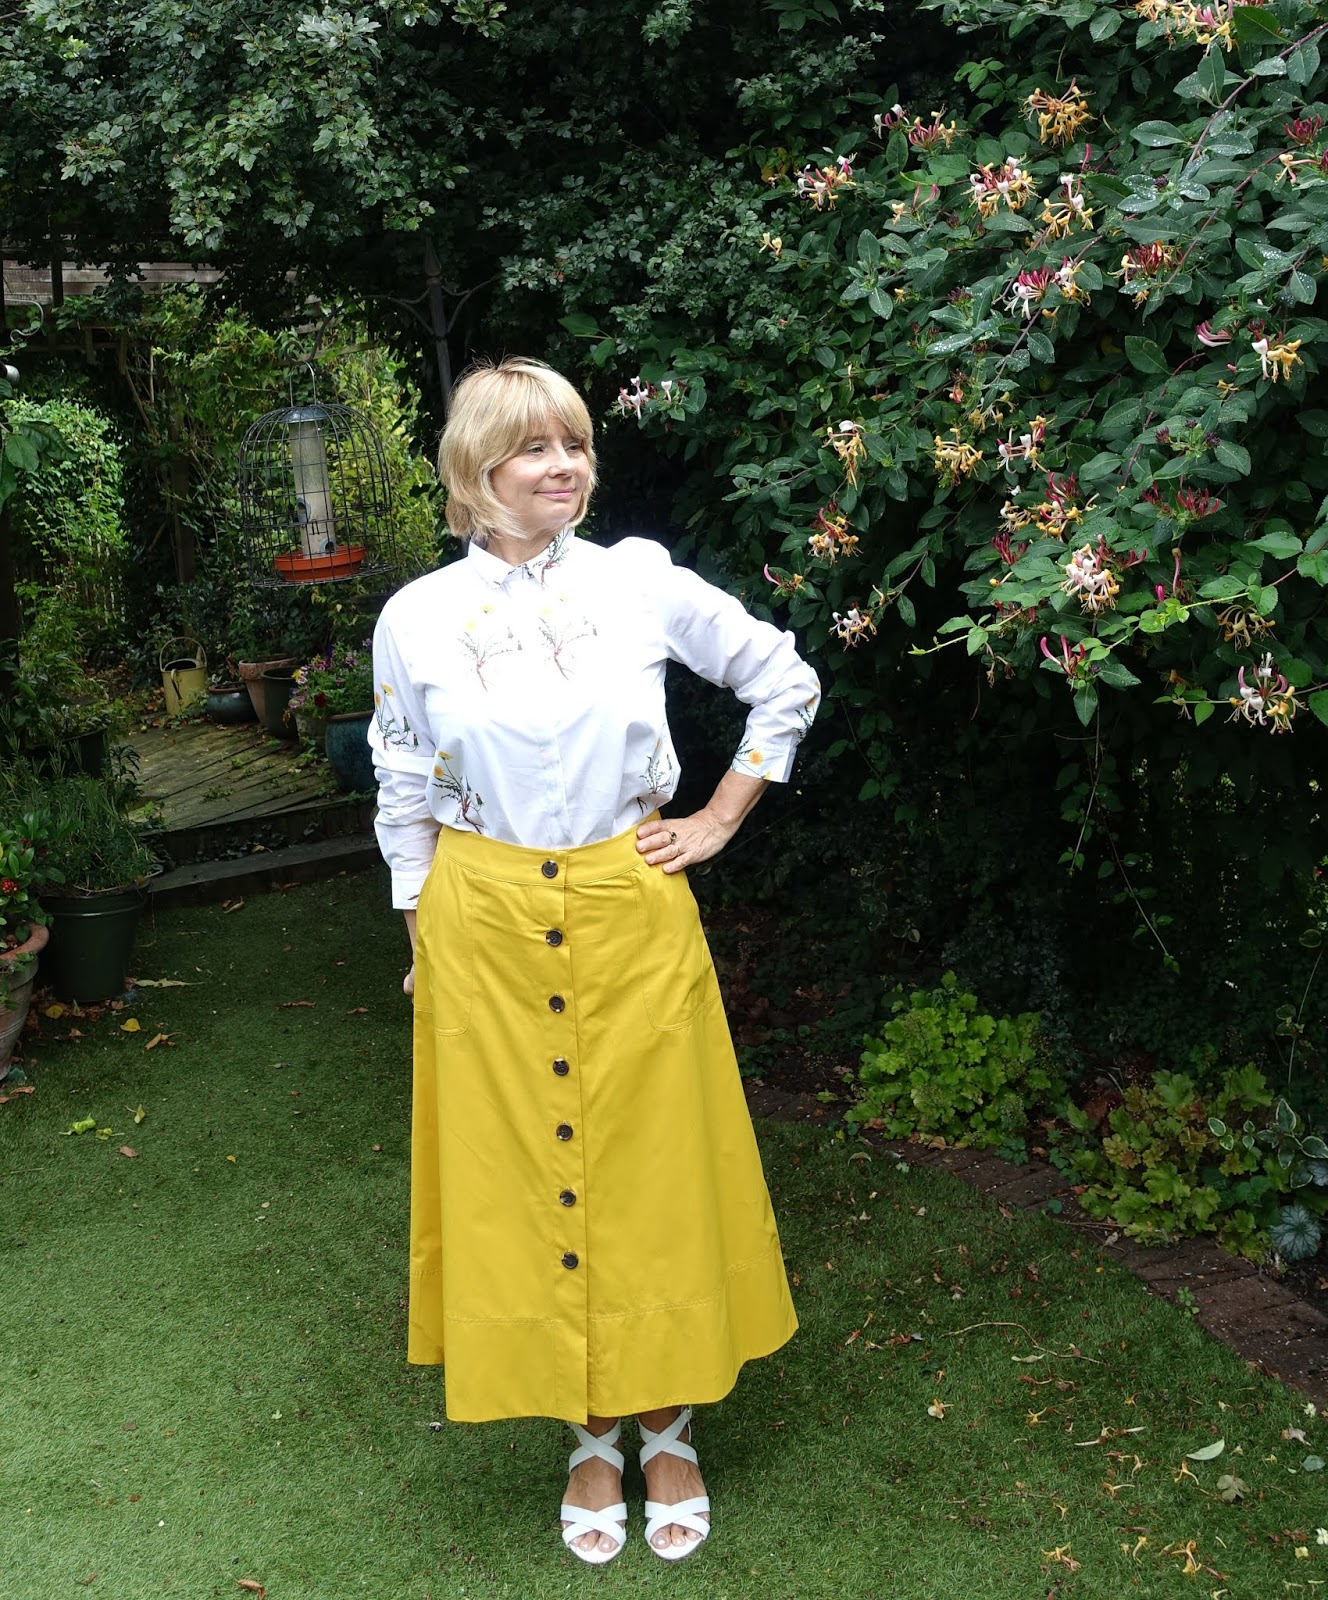 Garden picture of over-50s woman in white patterned shirt and yellow midi skirt